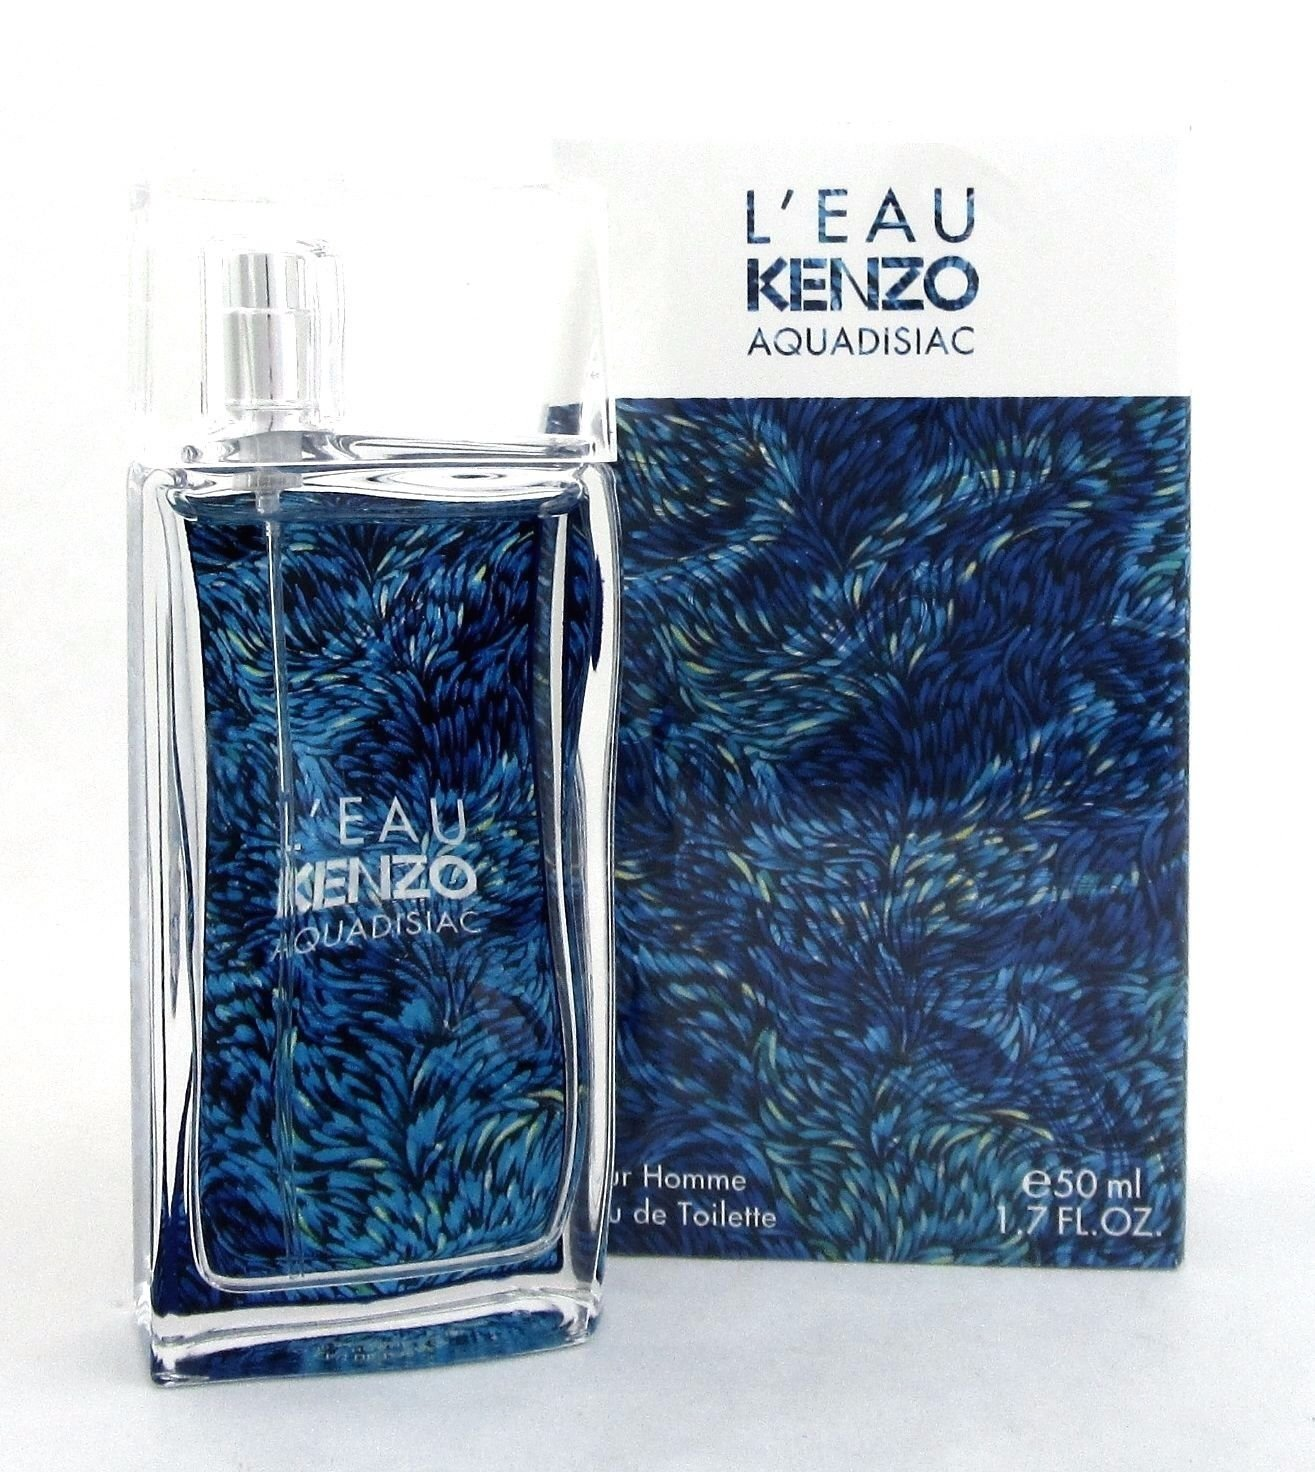 L'Eau Kenzo AQUADISIAC by Kenzo Eau de Toilette Spray for Men 1.7 FL. OZ./50 ML